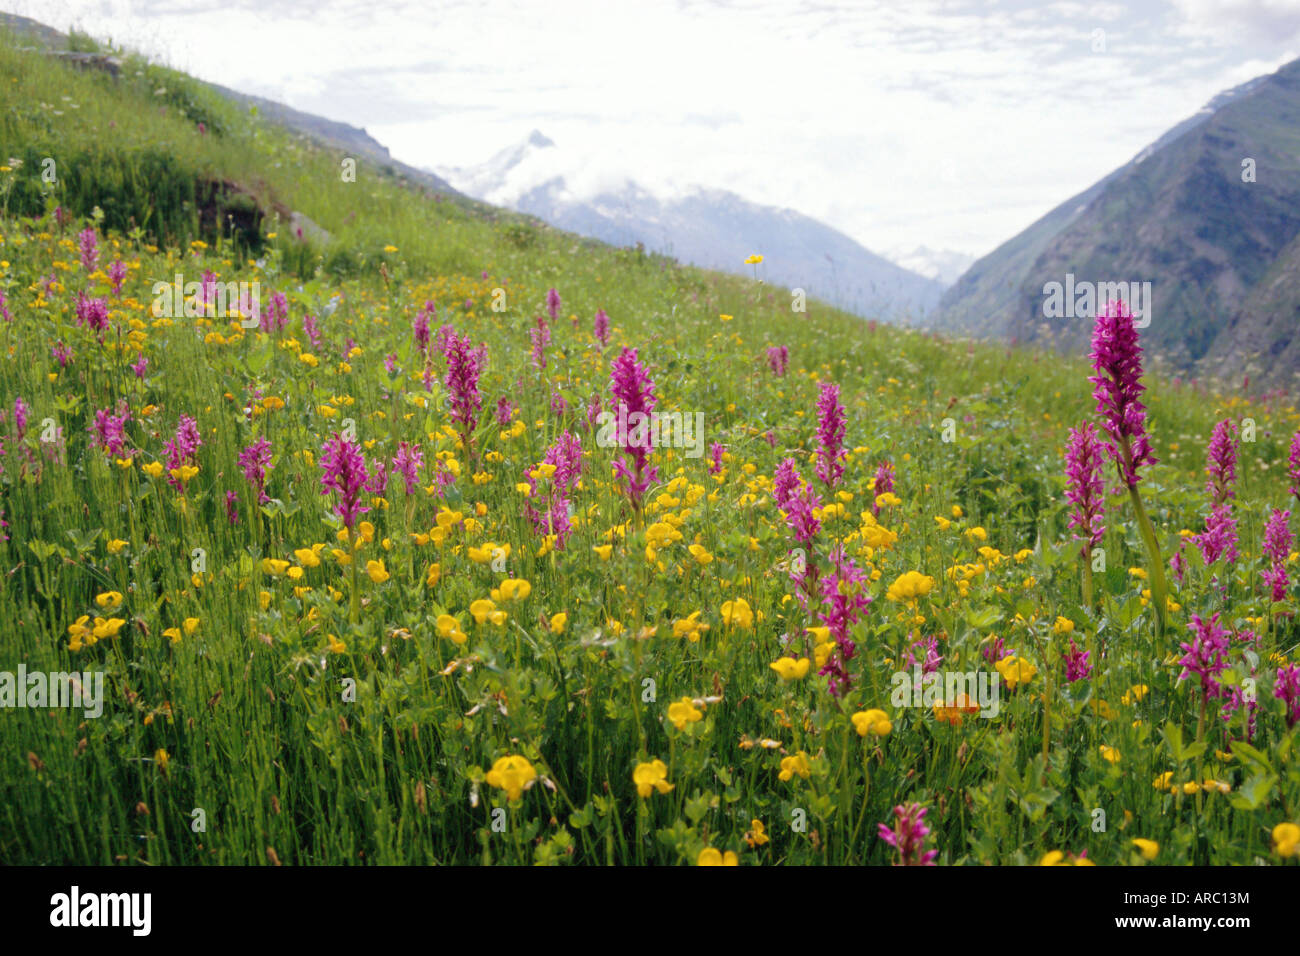 Wild orchids flowering in a meadow in the Himalayas south of Keylong, Himachal Pradesh, India - Stock Image